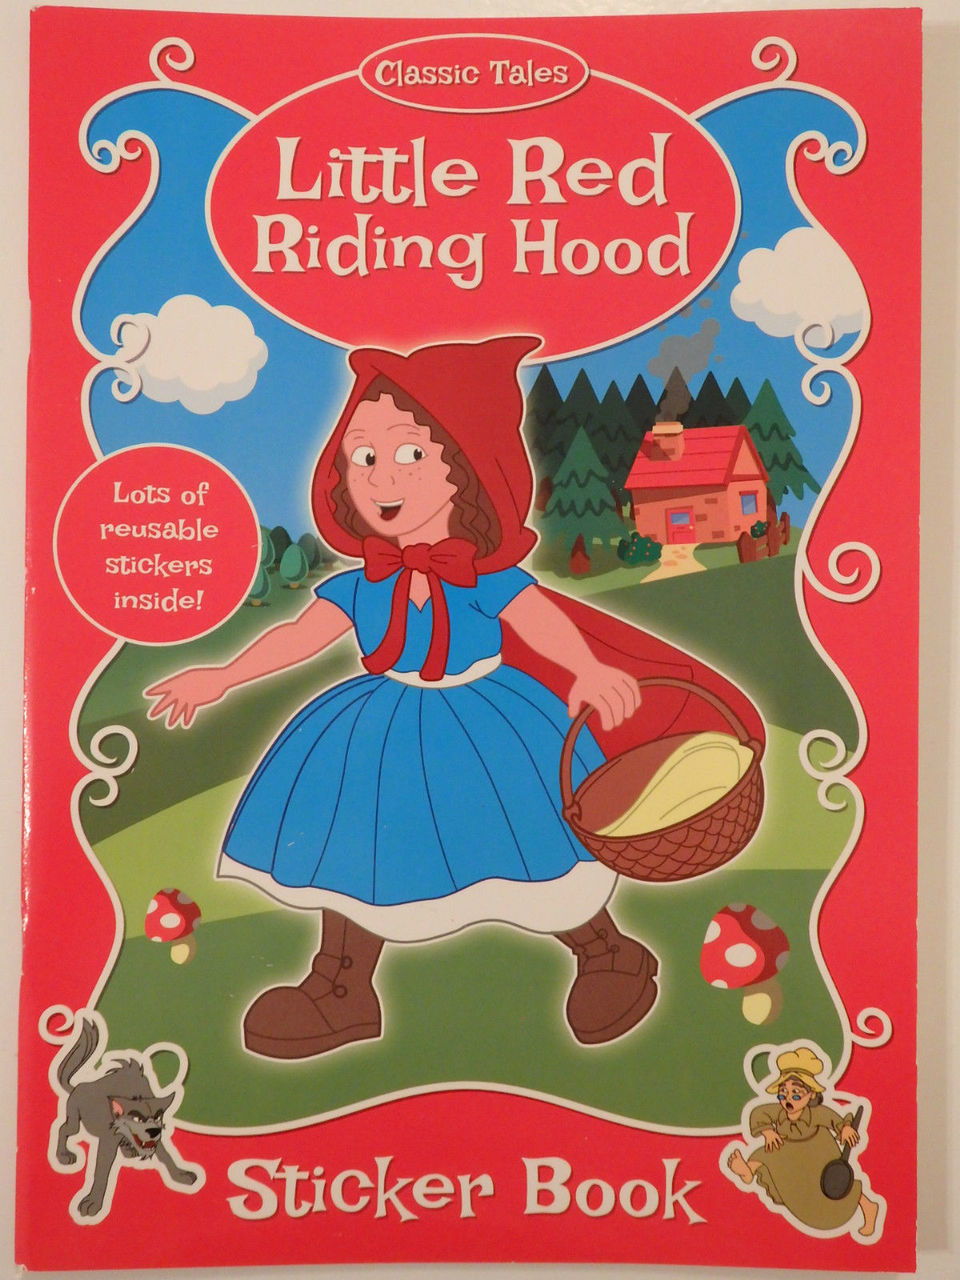 Fairy Tale Sticker Book - Little Red Riding Hood